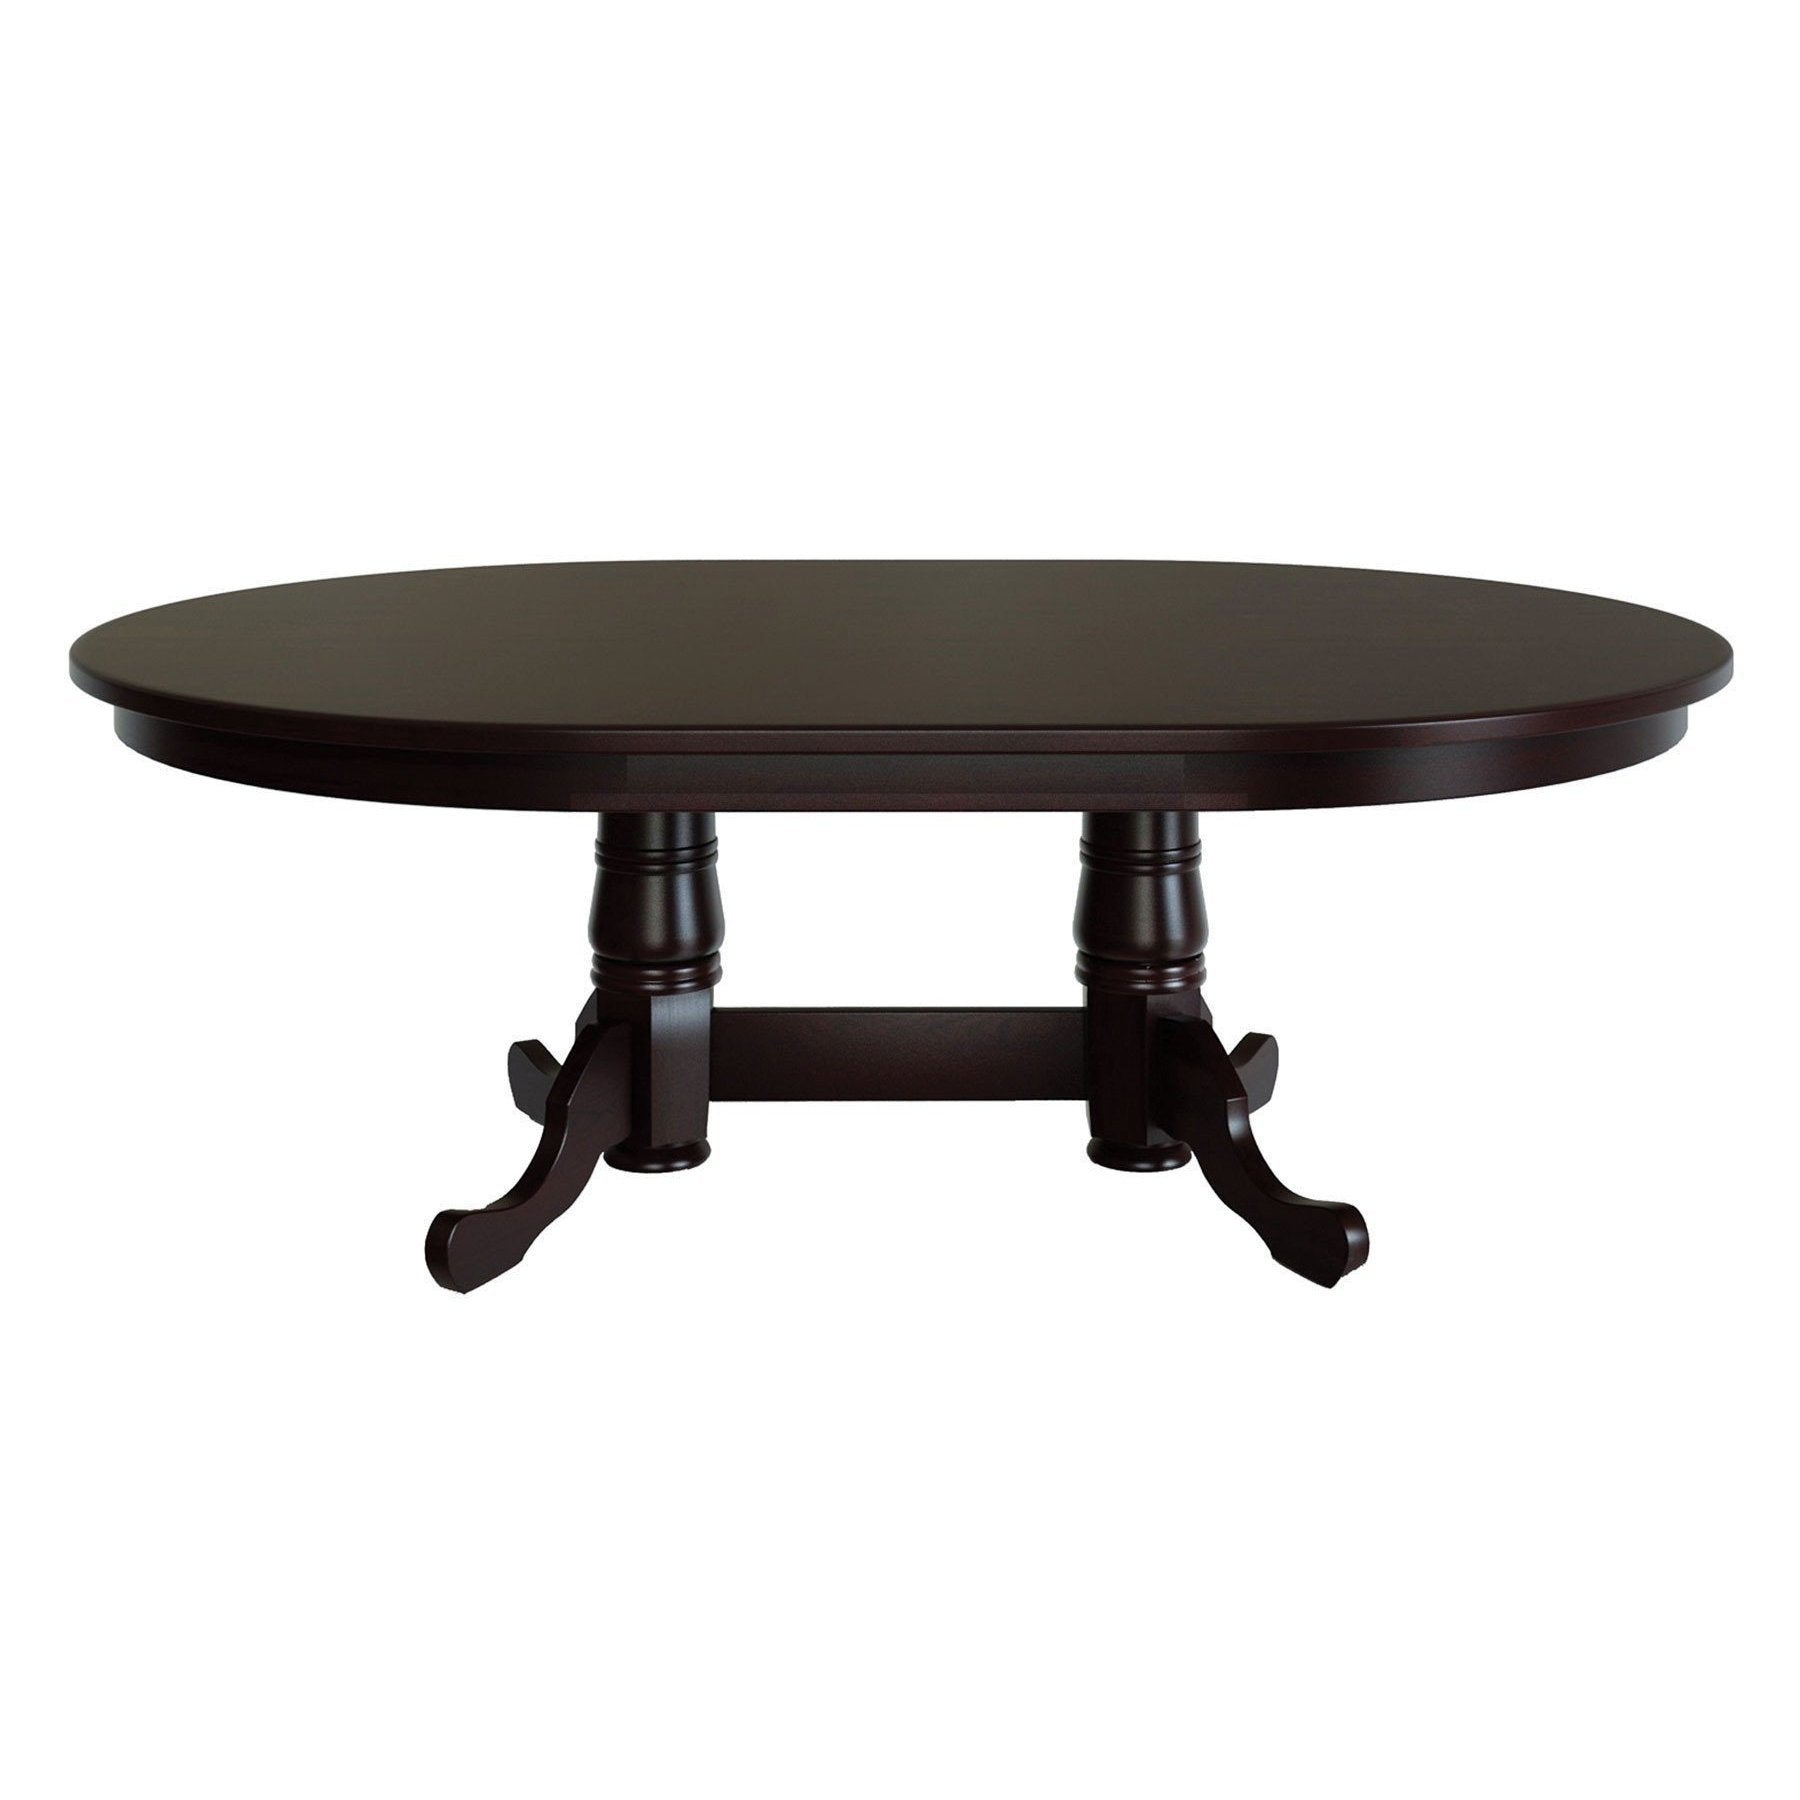 tables double pid richville table p dining pedestal amish